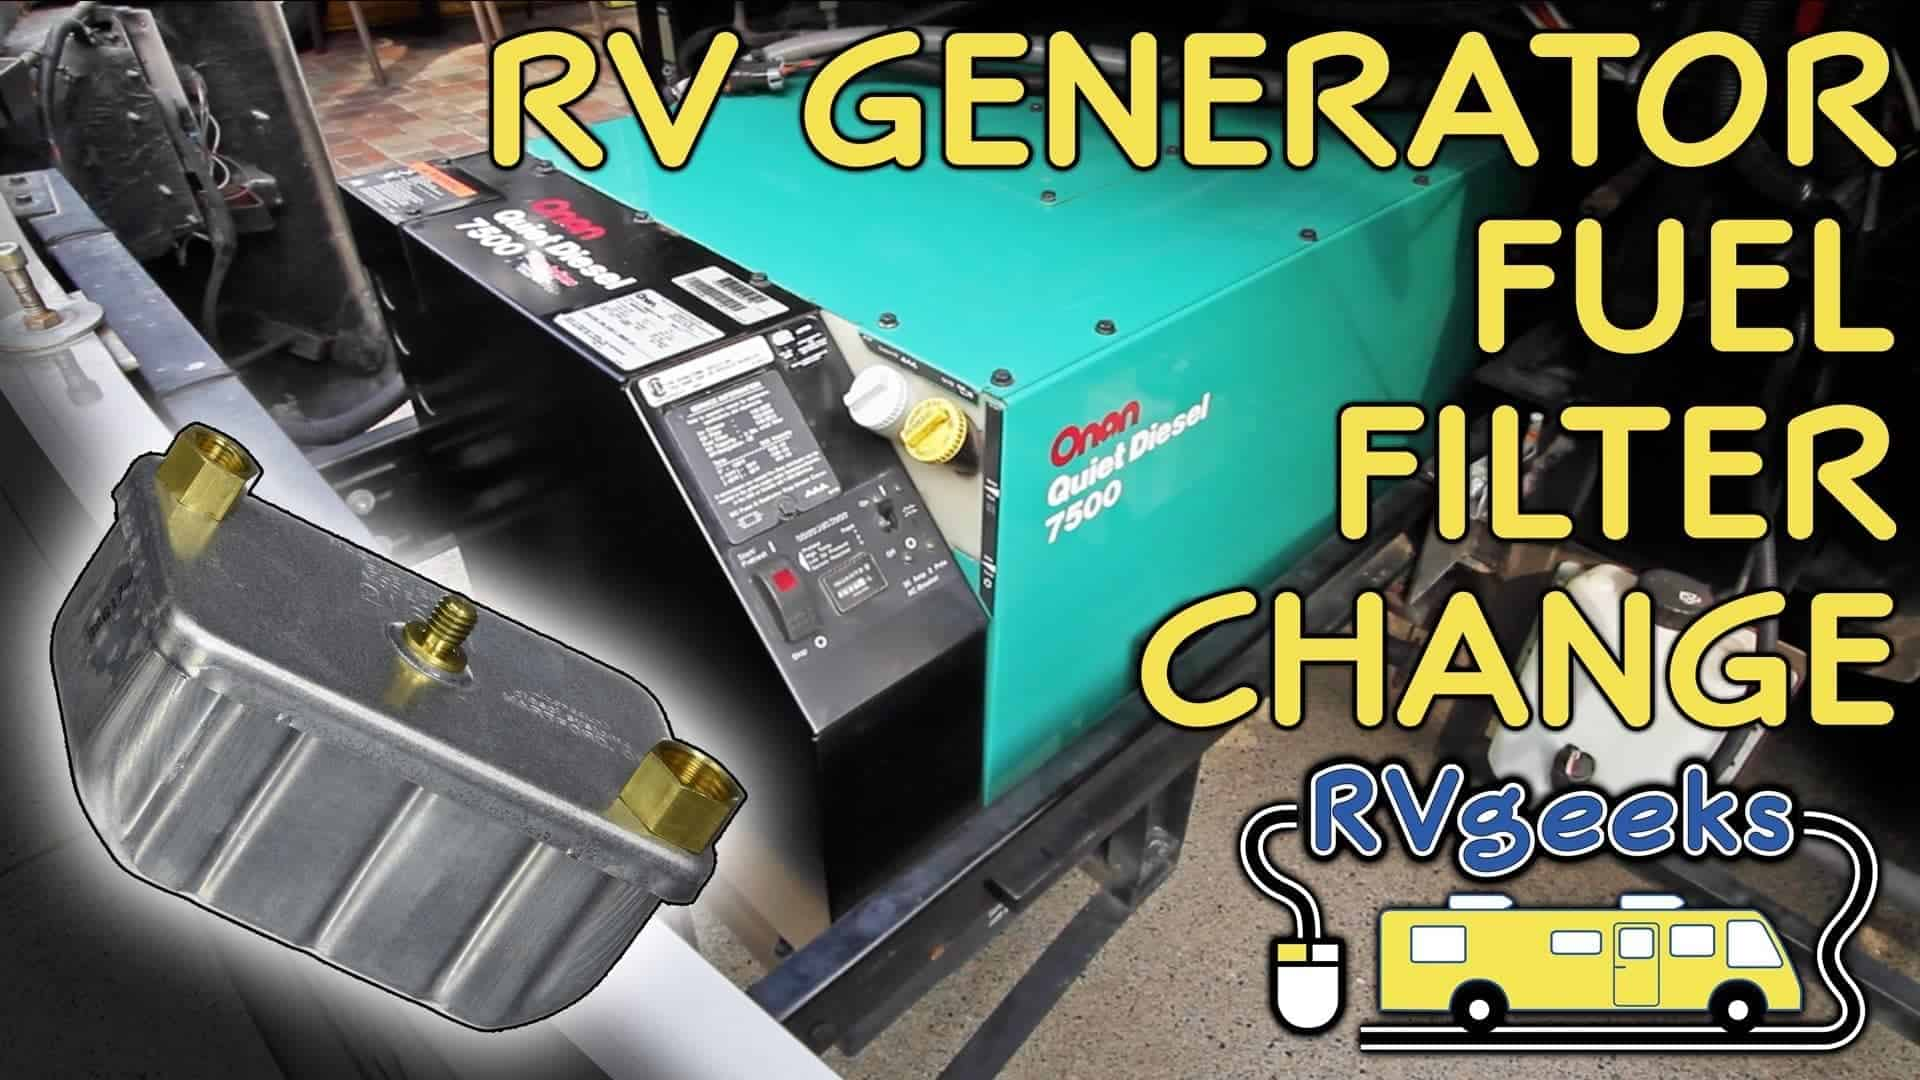 Onan RV Generator - Fuel Filter Replacement